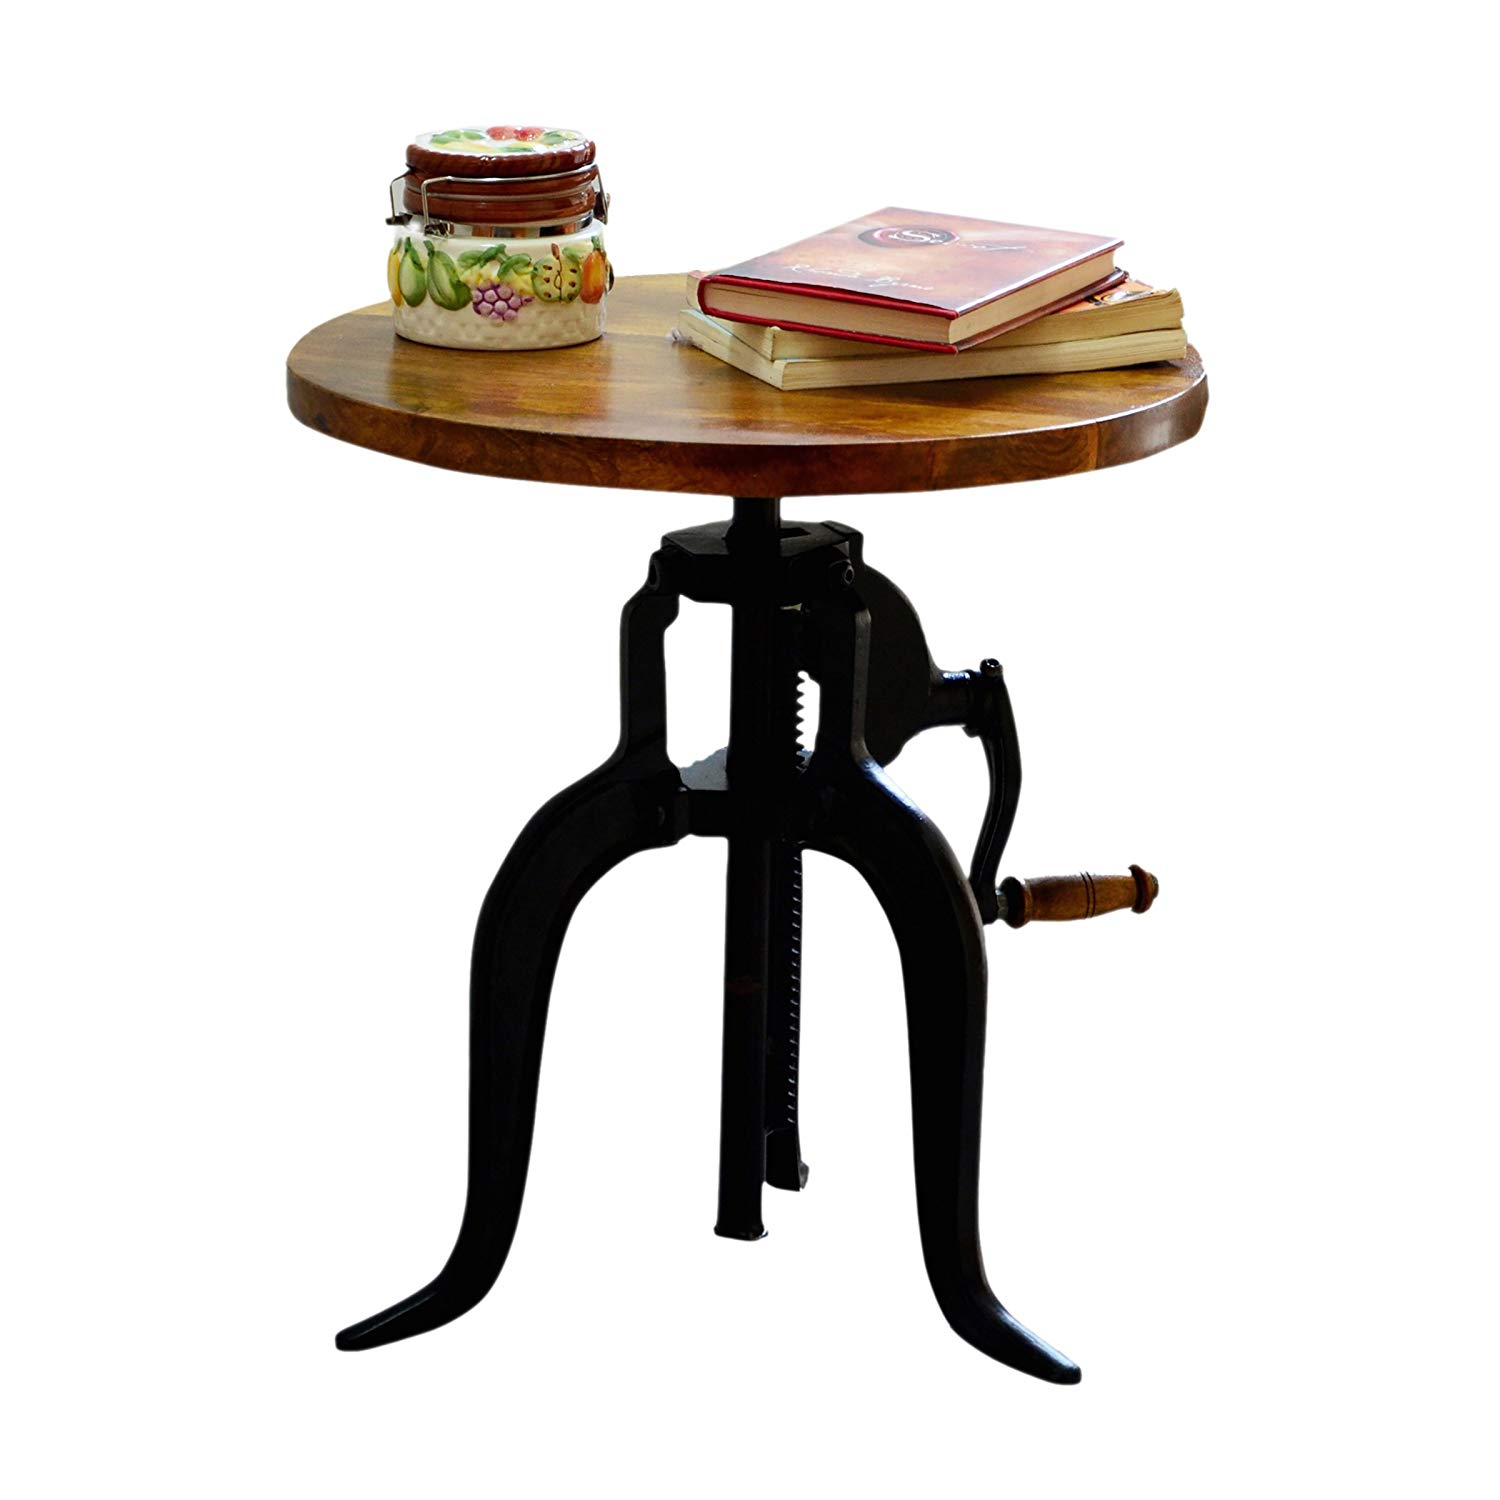 carolina chair and table brook adjustable crank accent qol chestnut black kitchen dining west elm emmerson contemporary glass end tables calligaris furniture wrought iron wine